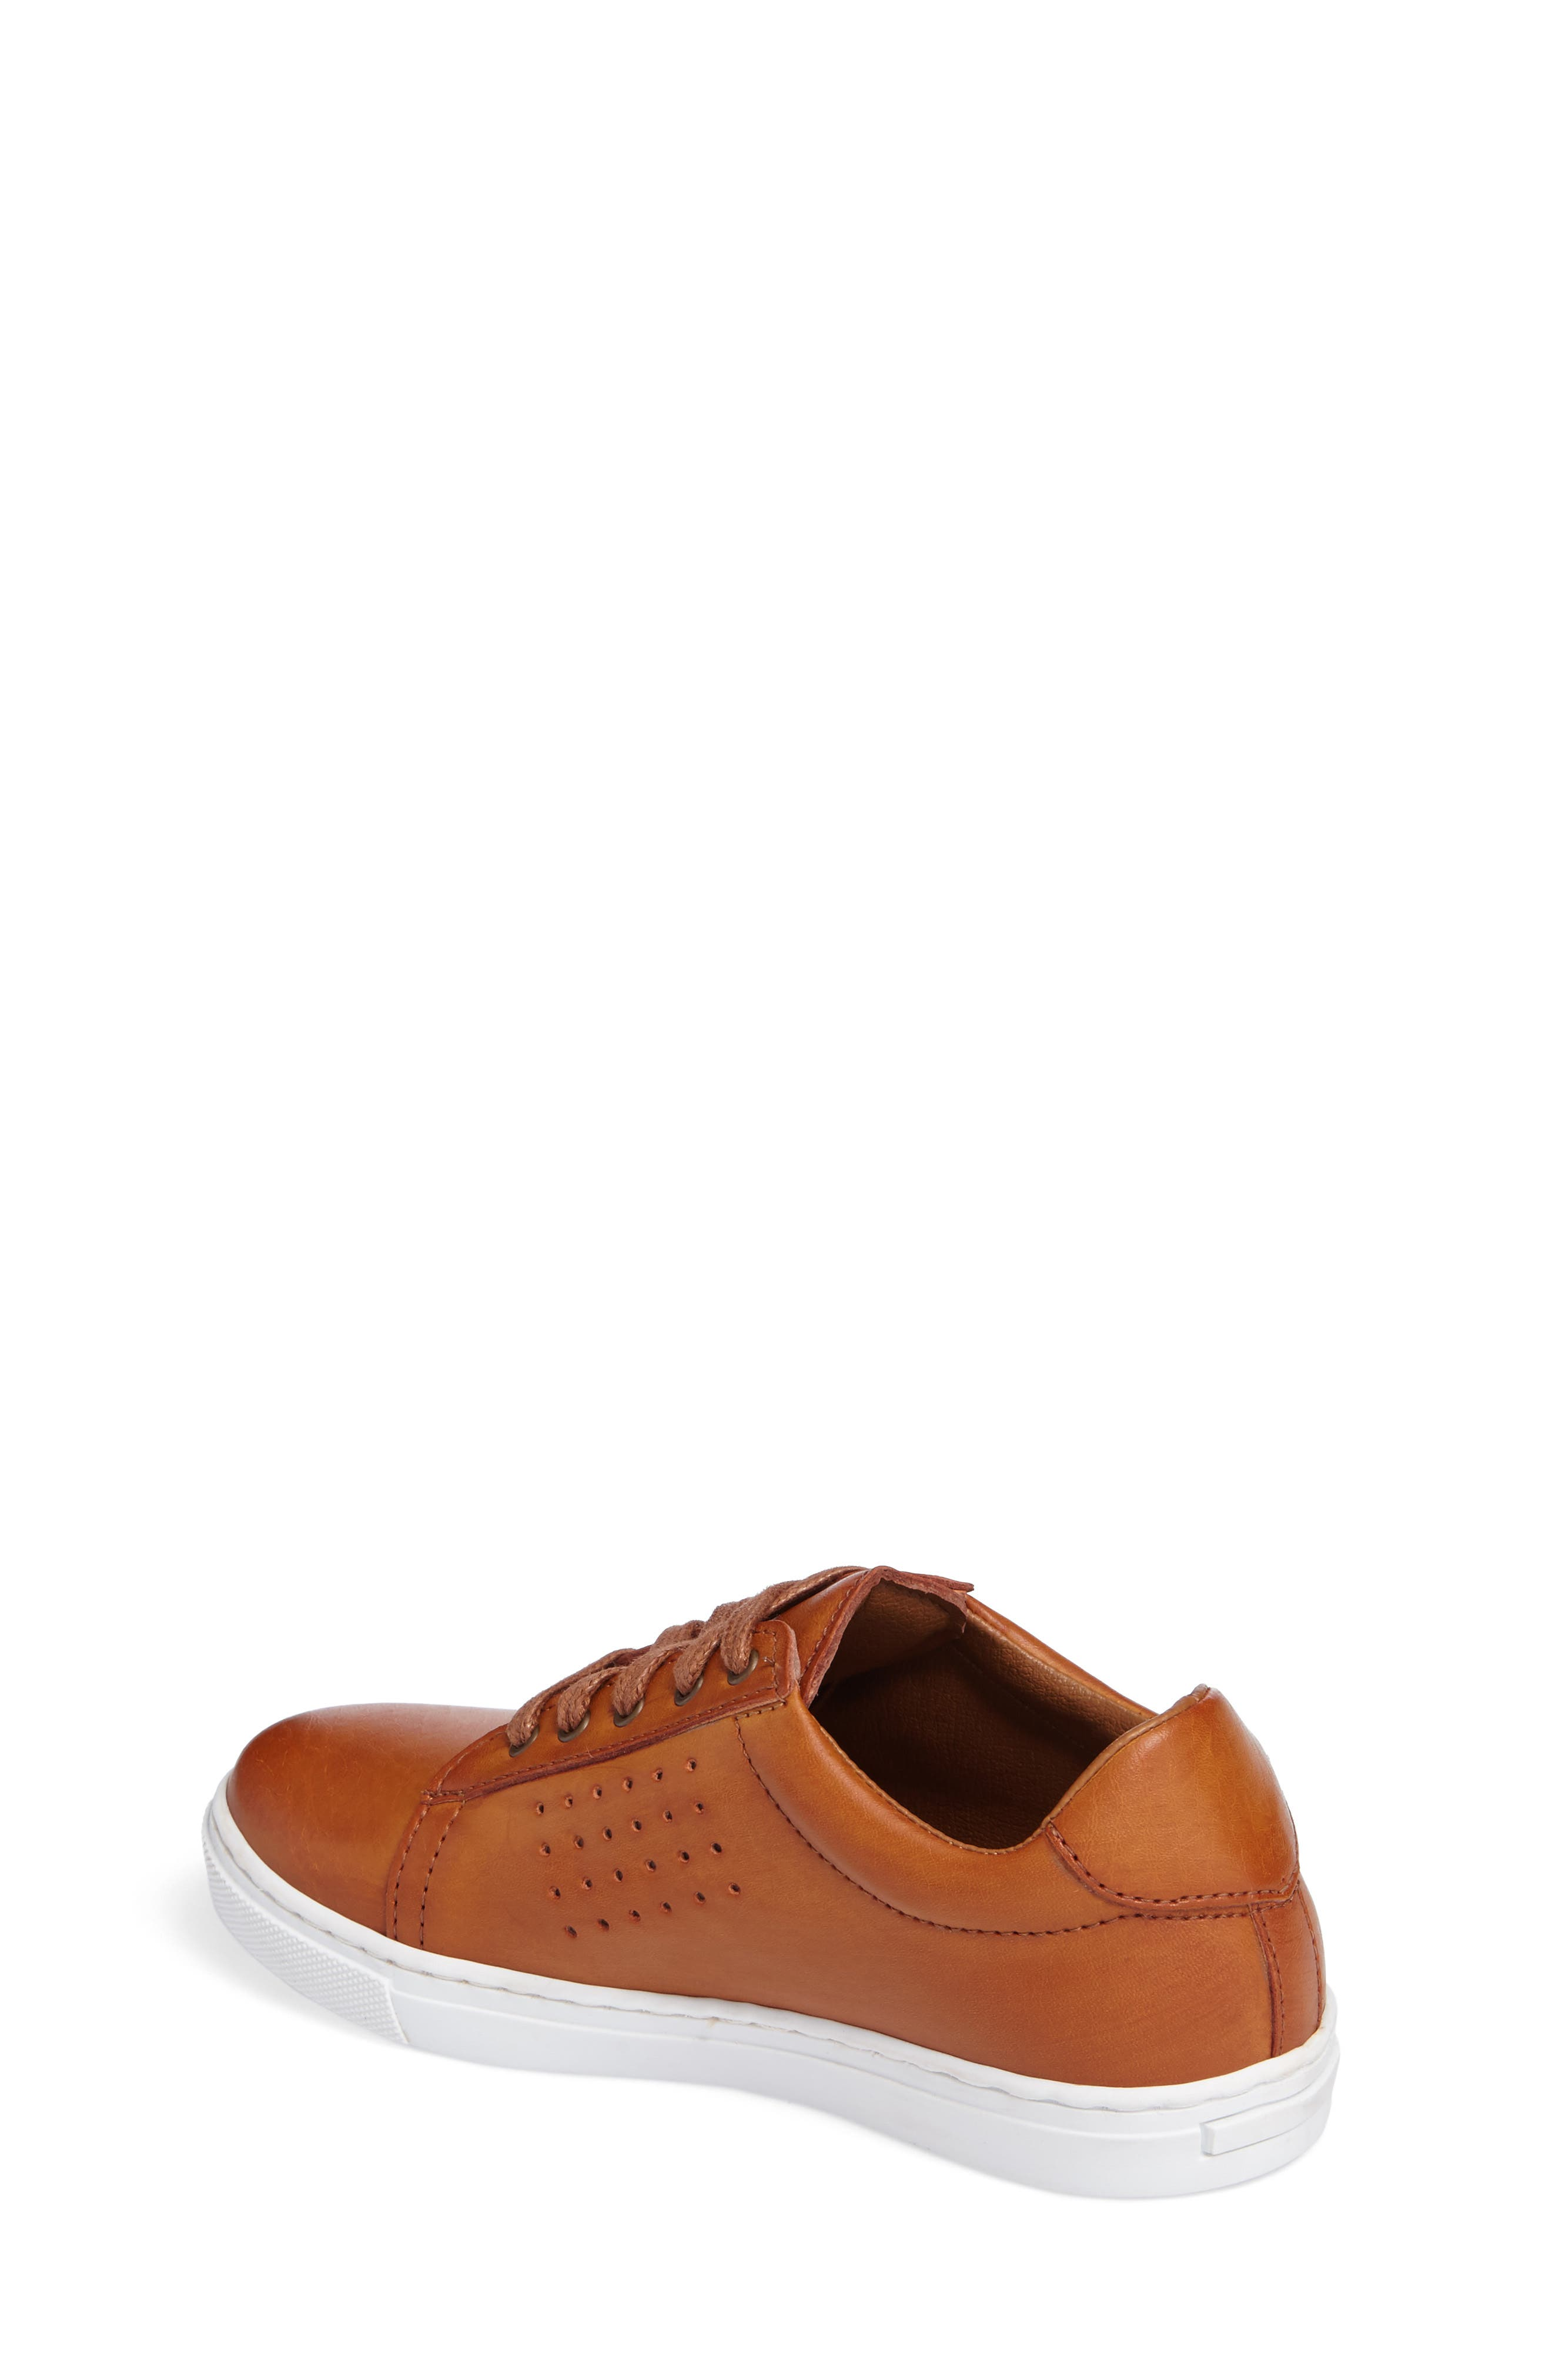 Grafte Perforated Sneaker,                             Alternate thumbnail 2, color,                             NATURALE